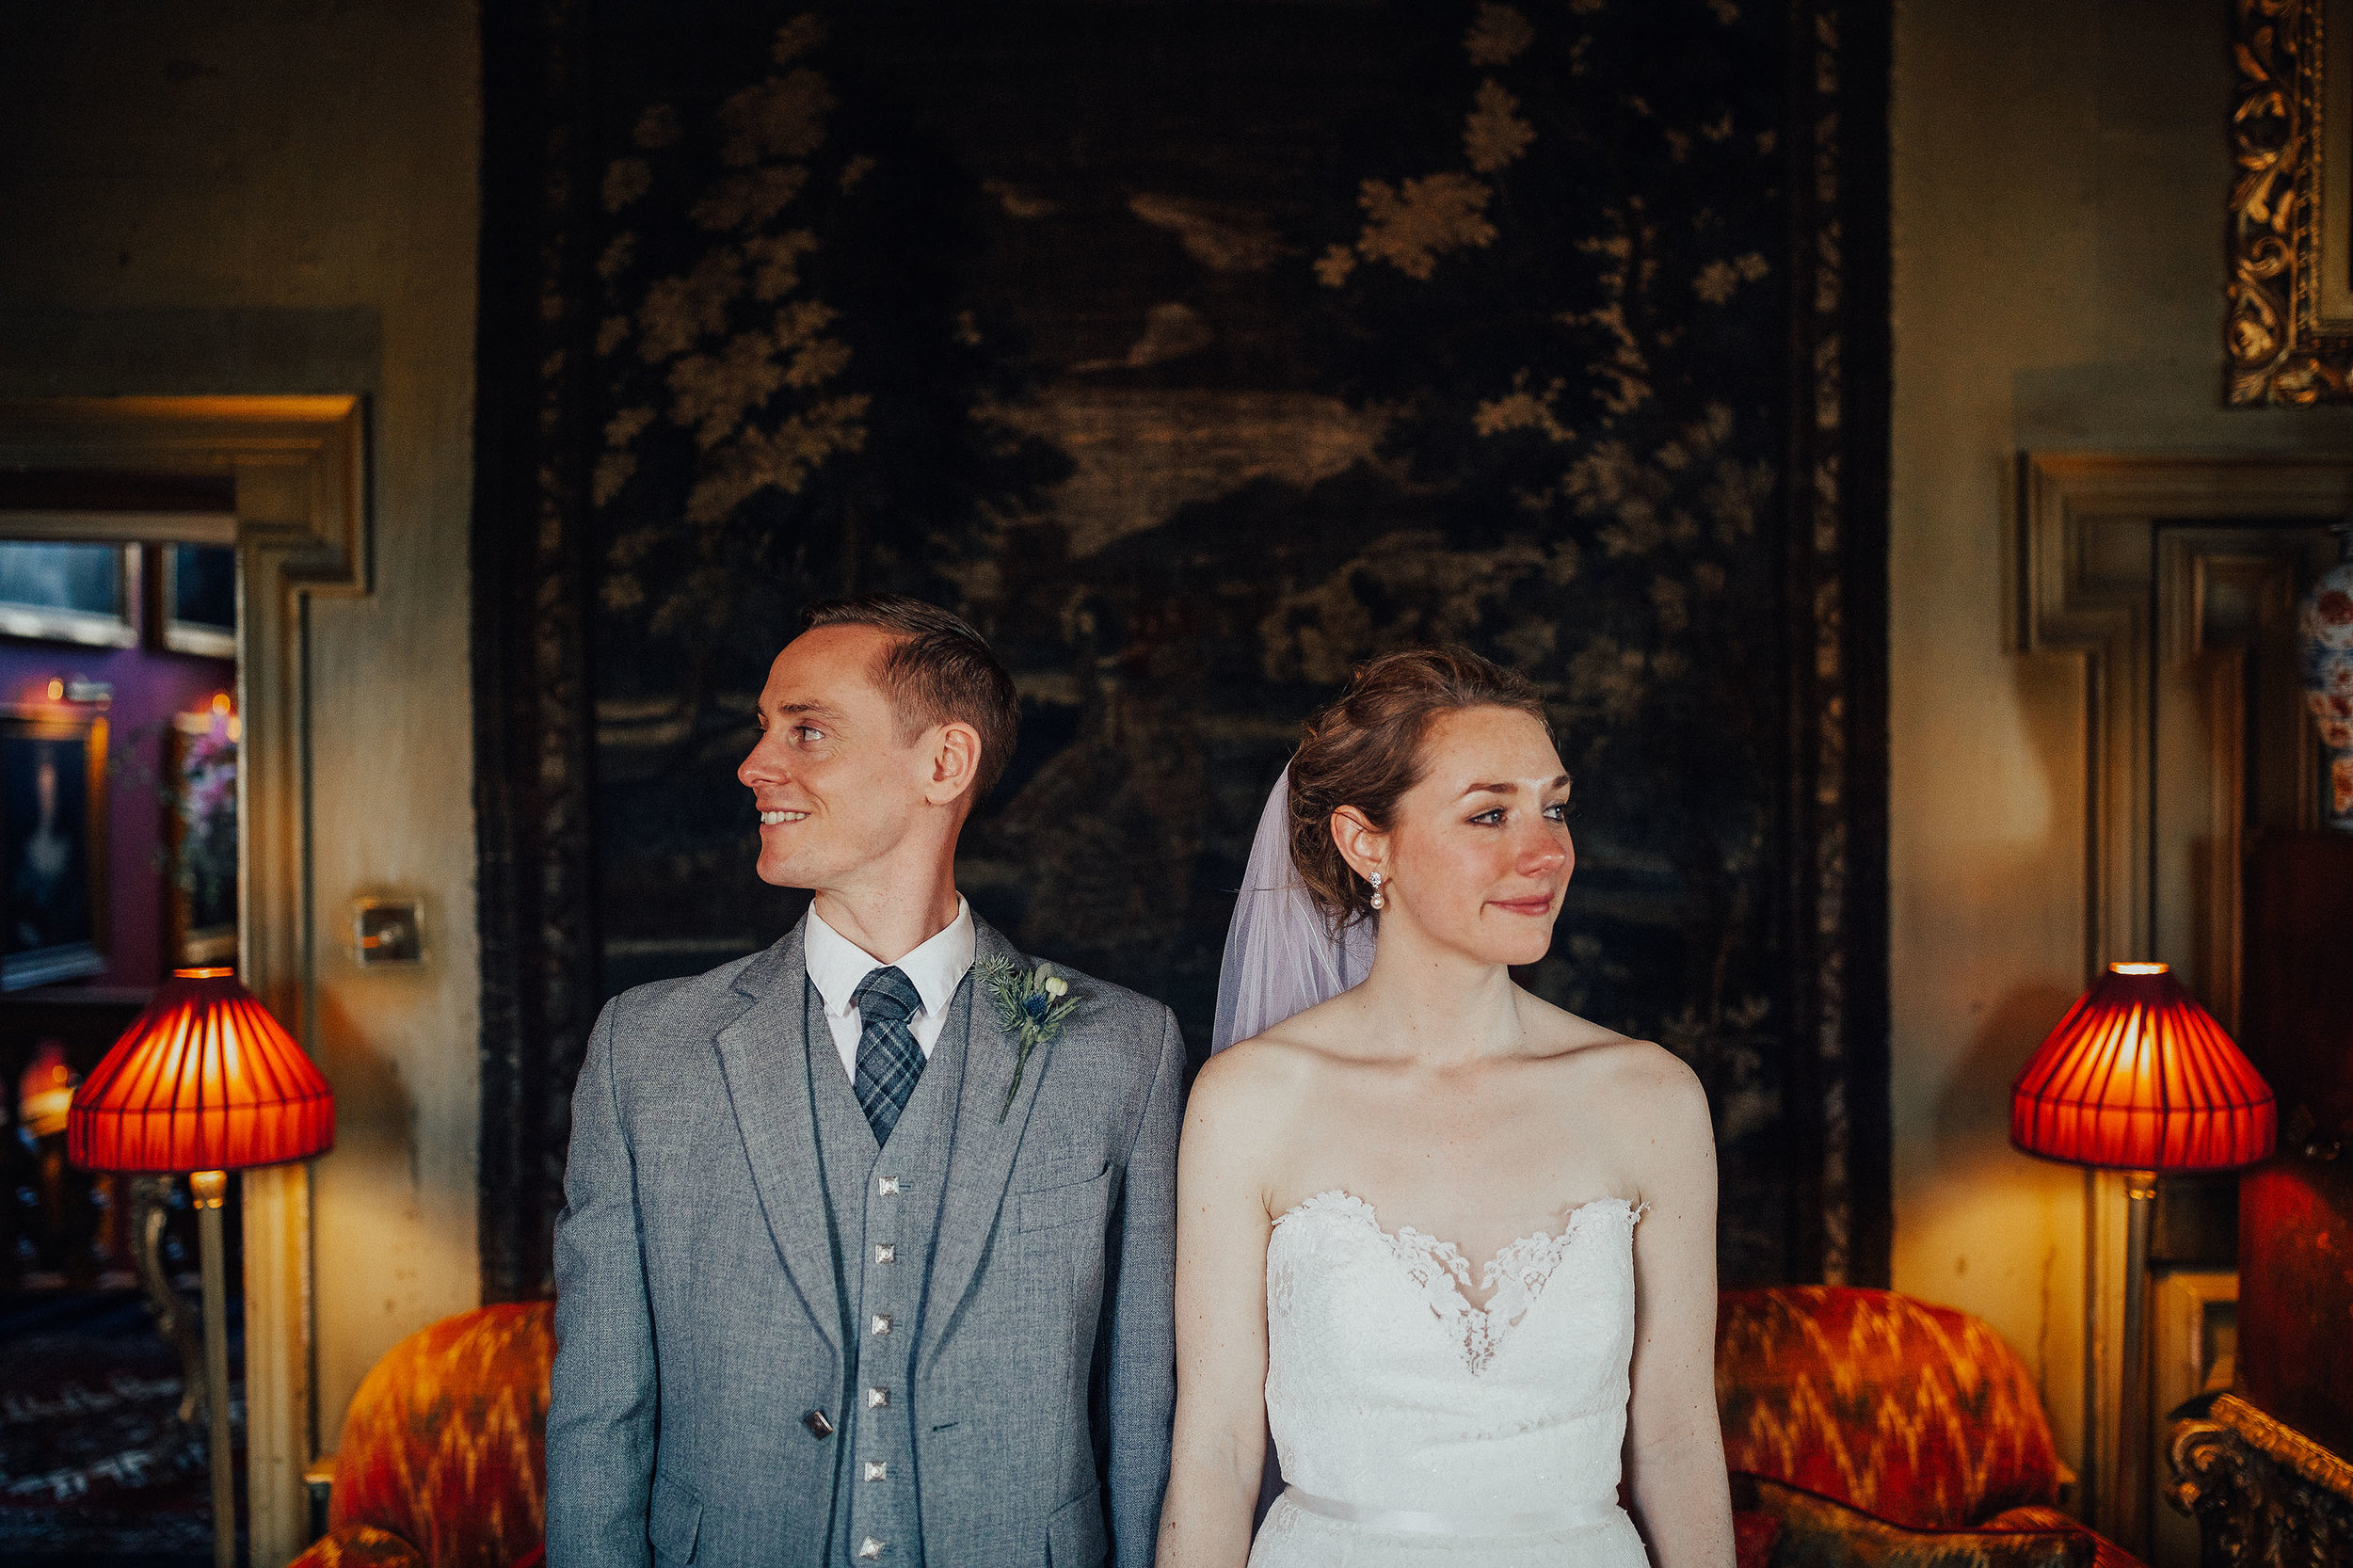 PJ_PHILLIPS_PHOTOGRAPHY_2018_SCOTLAND_WEDDING_PHOTOOGRAPHER_206.jpg